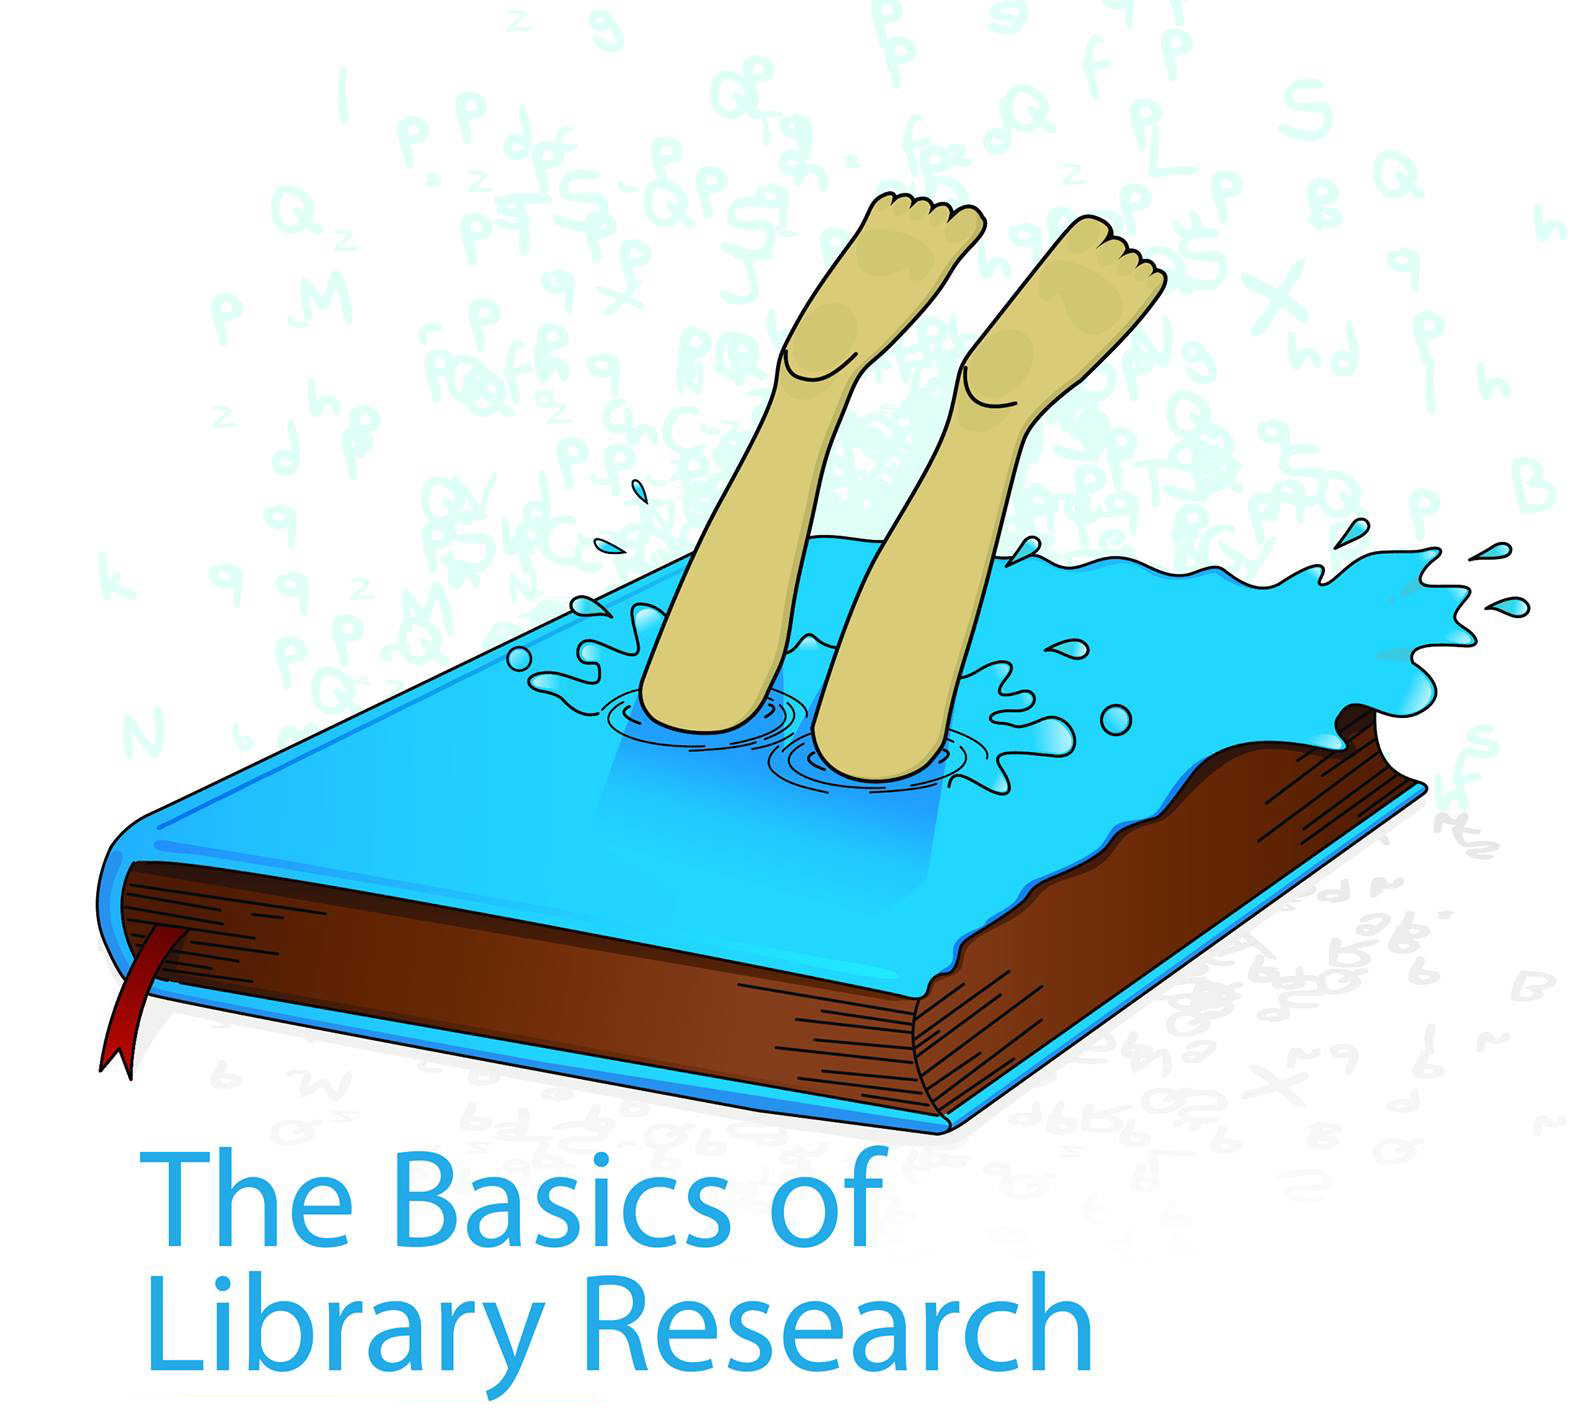 Basics of Library Research Splash